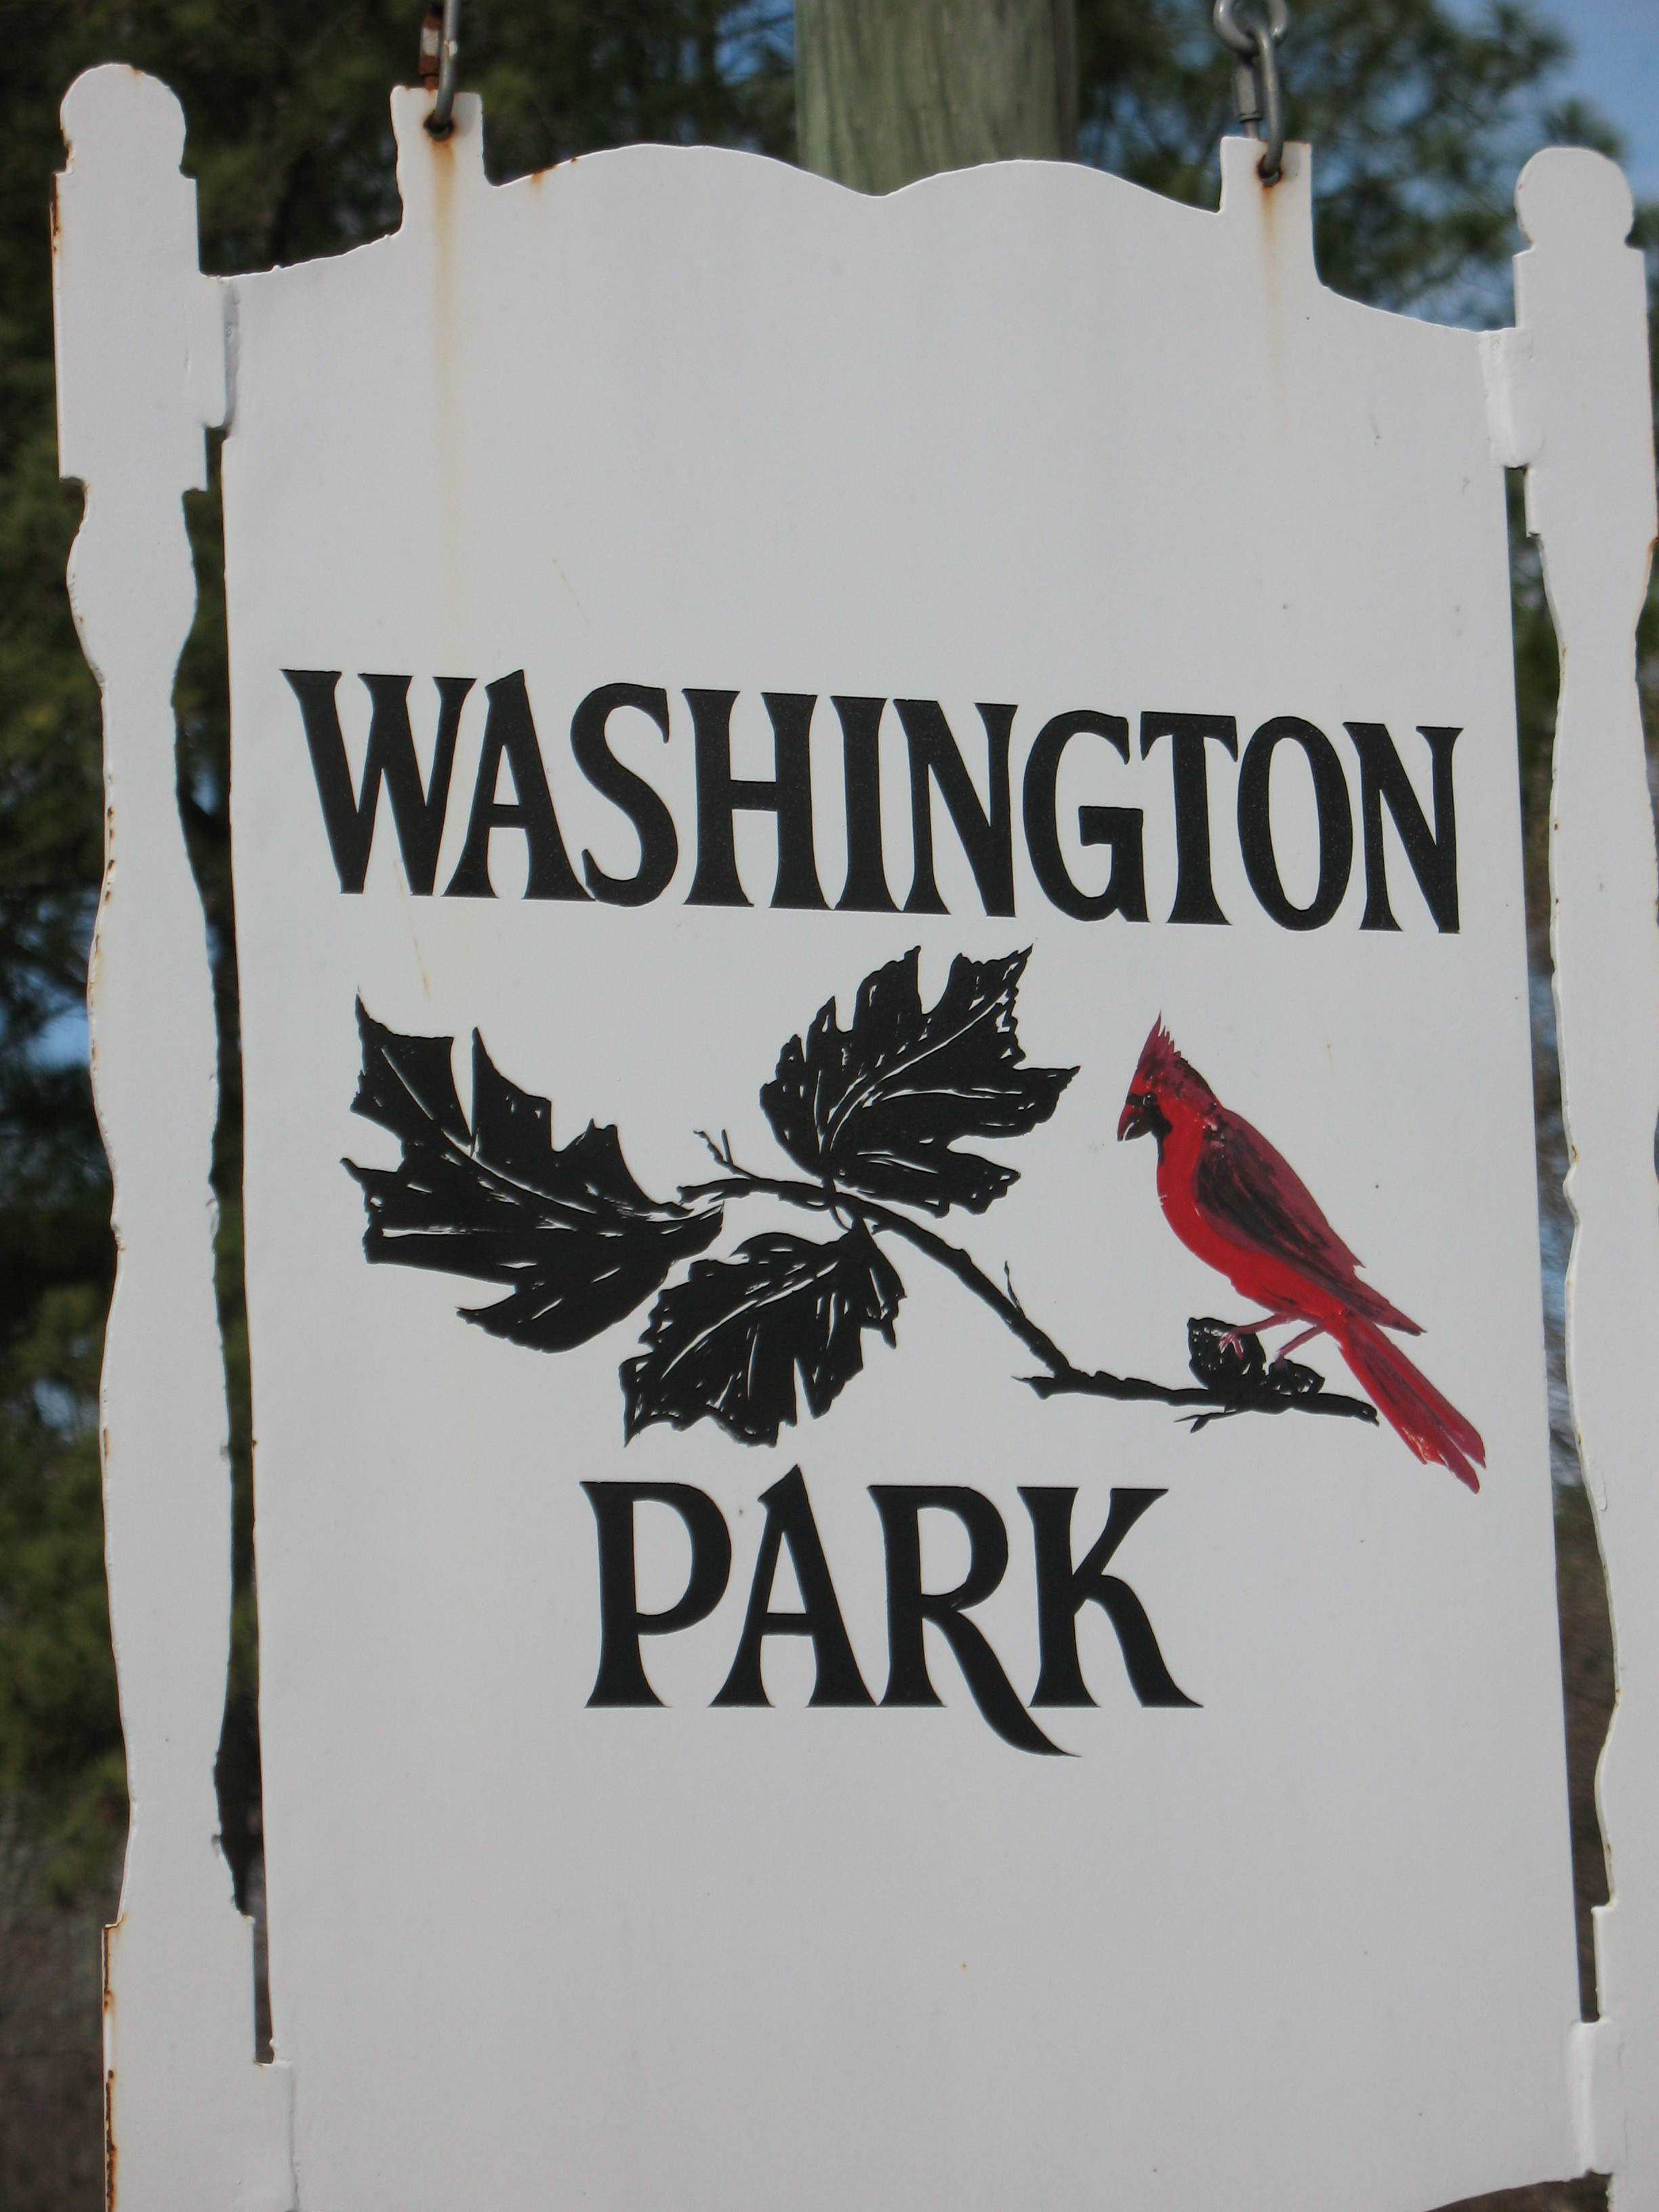 The Town of Washington Park,washington park town